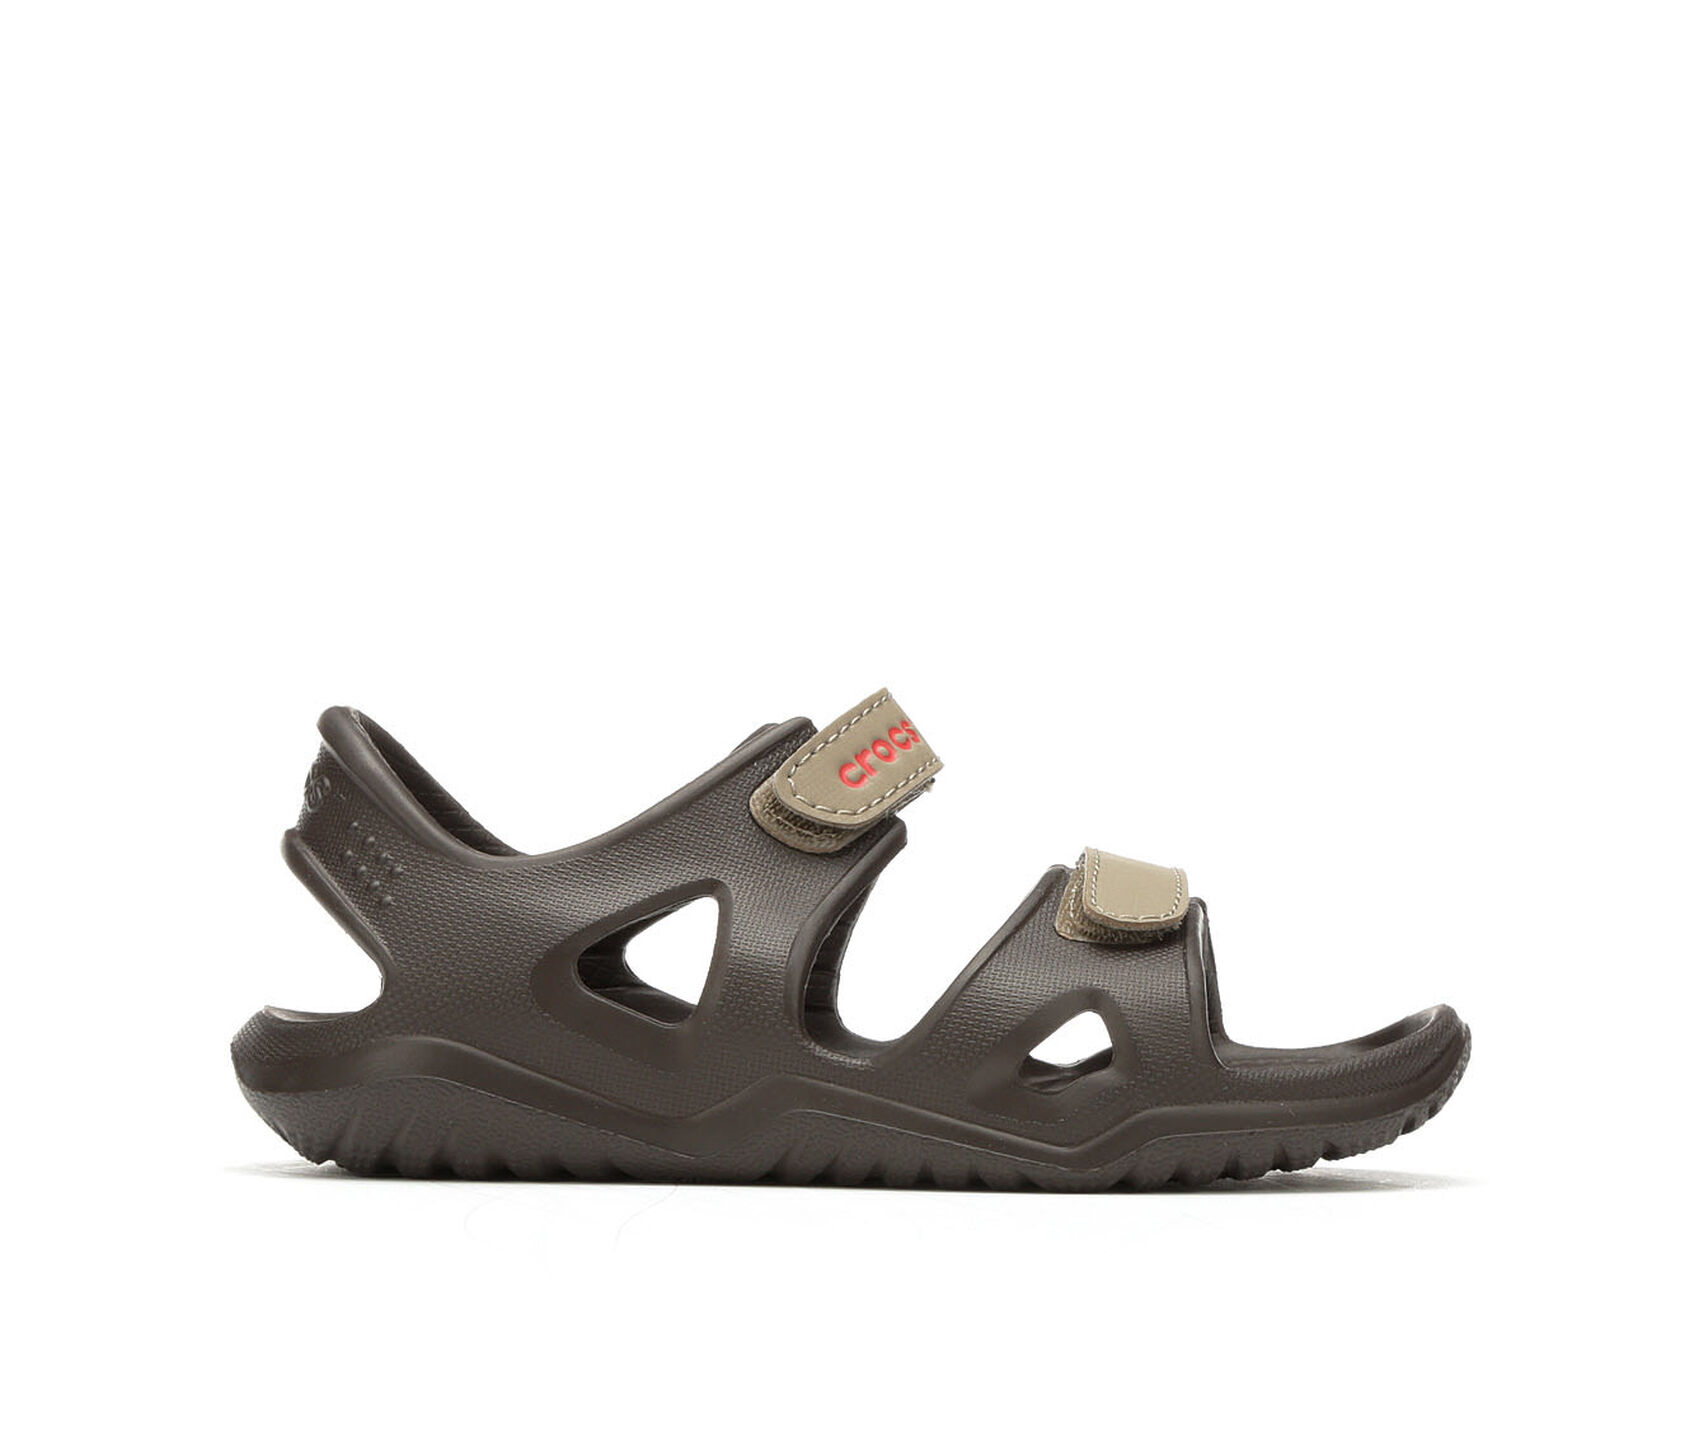 513fea248f56 ... Crocs Toddler Swiftwater River Sandal. Previous